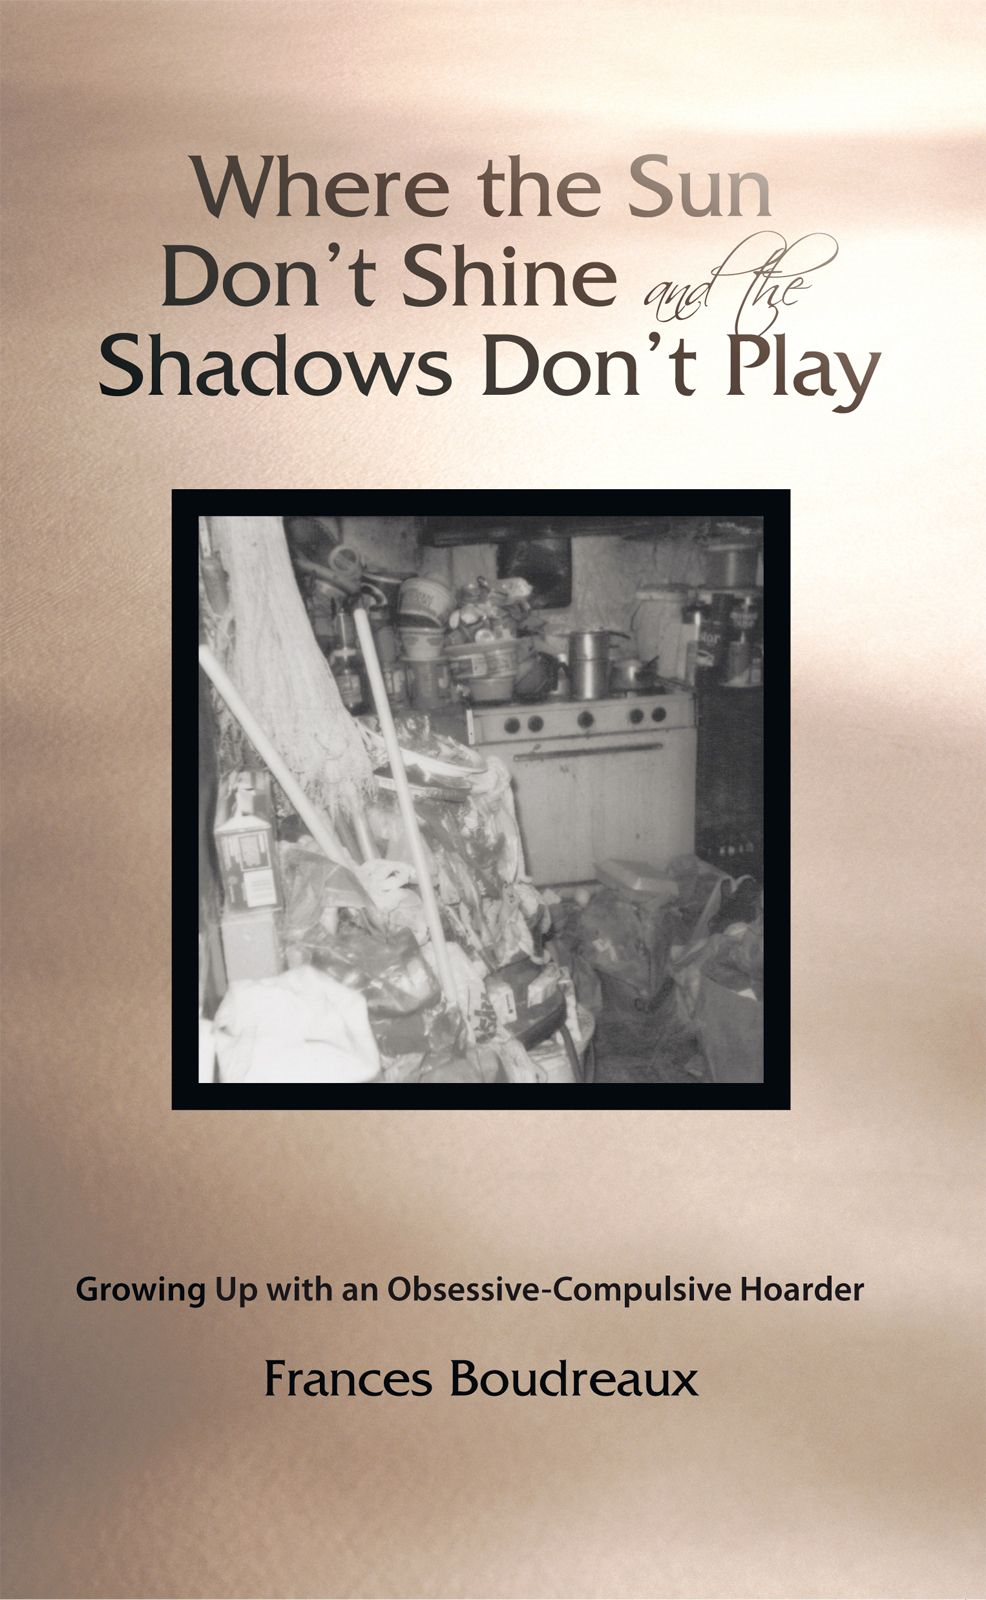 Where the Sun Don't Shine and the Shadows Don't Play - Author Solutions